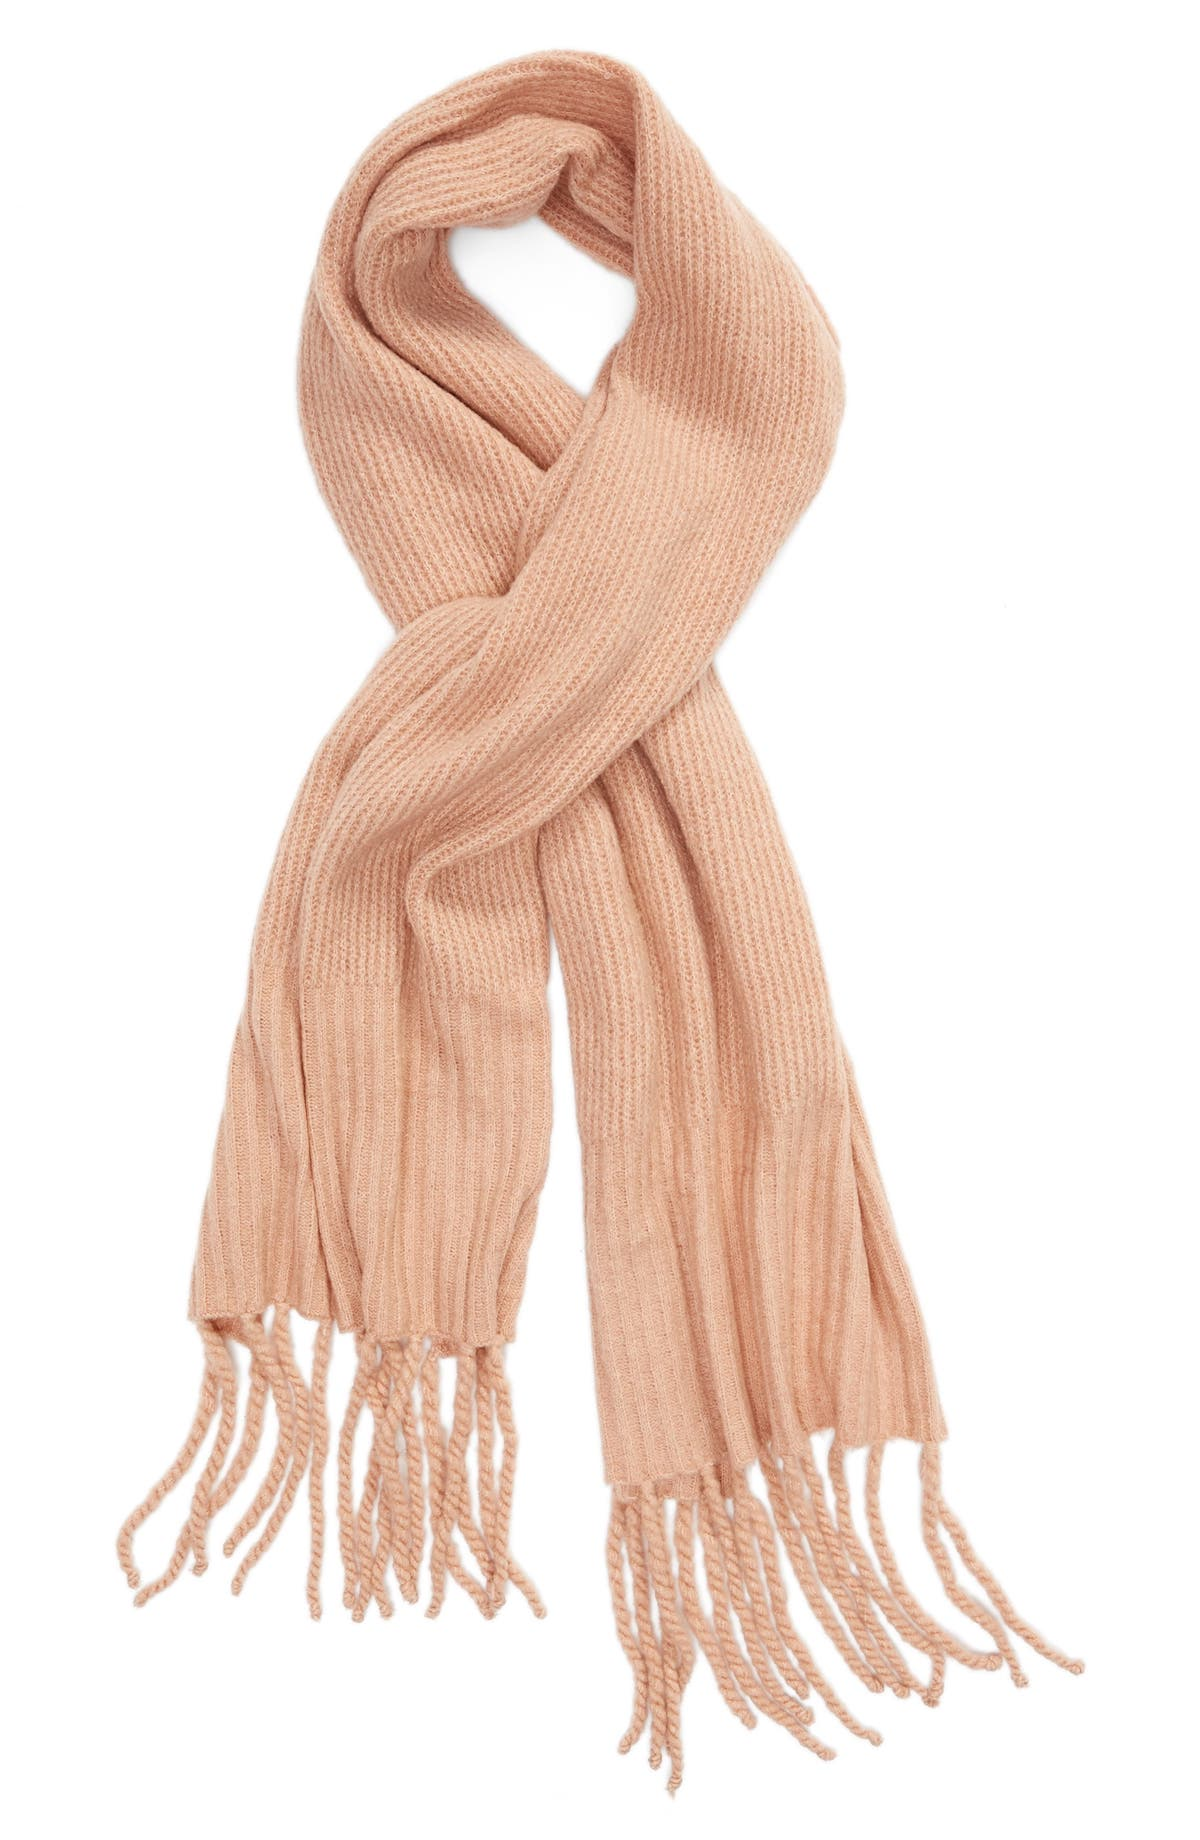 Free People Knit Blanket Scarf